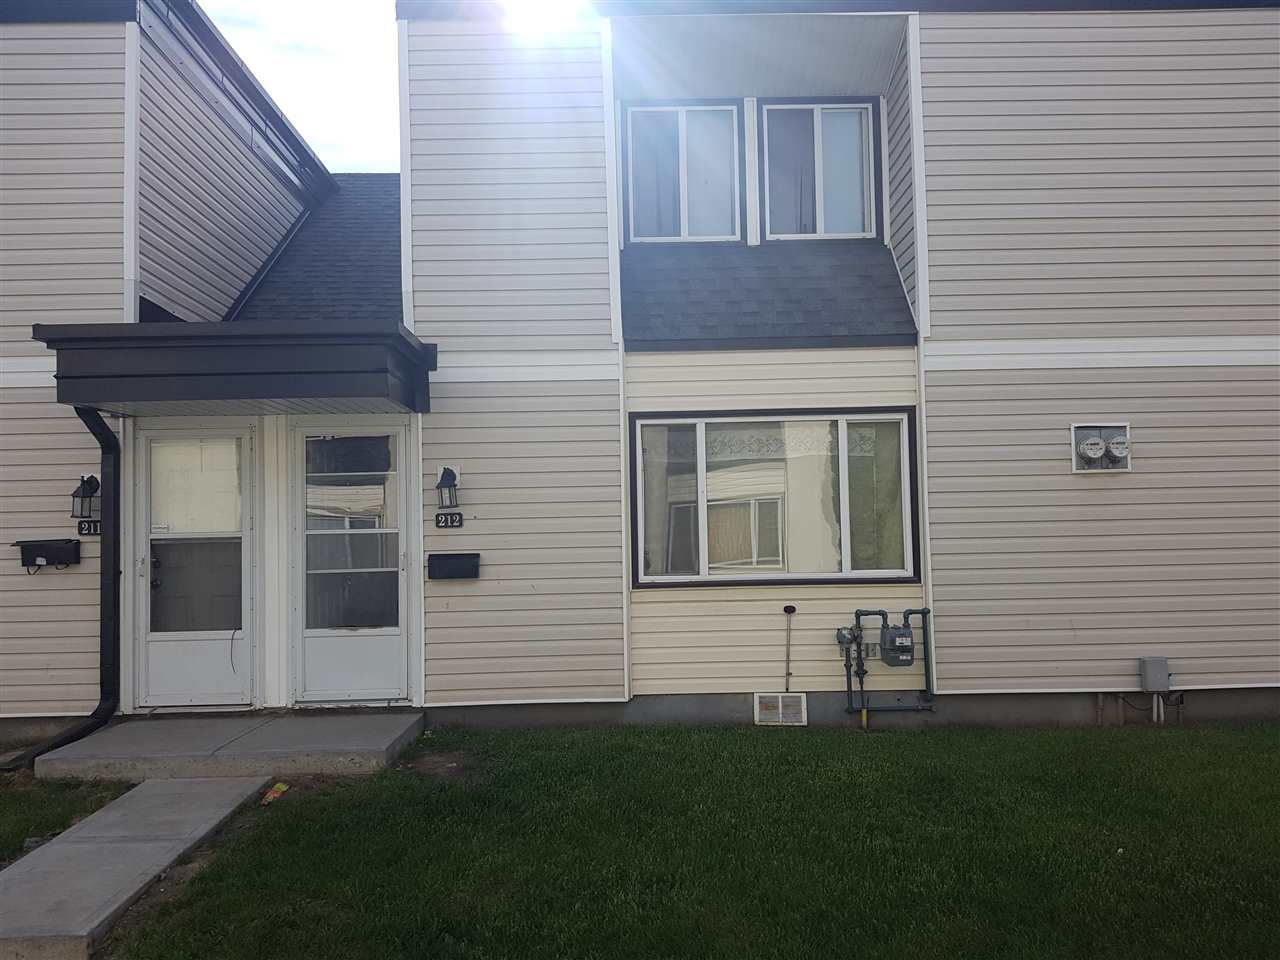 Calling all First time home buyers or Investors. This 3 bedroom, 1 and half baths, two story condo town-home with full basement has plenty of space for a family and in close proximity to many school options. Looking to invest but don't have time to manage the property. This complex has an onsite property management office to handle your rental needs. Park Haven Town-homes is located in the mature residential community of Rundle Heights with easy access to the Yellow Head and Anthony Henday highways. Only a 10 minute walk to beautiful Rundle Park; amenities include tennis courts, baseball diamonds, skating trails and tobogganing not to mention walking trails and green space. Take a short drive to the ACT Aquatic and Recreation Centre for a swim.